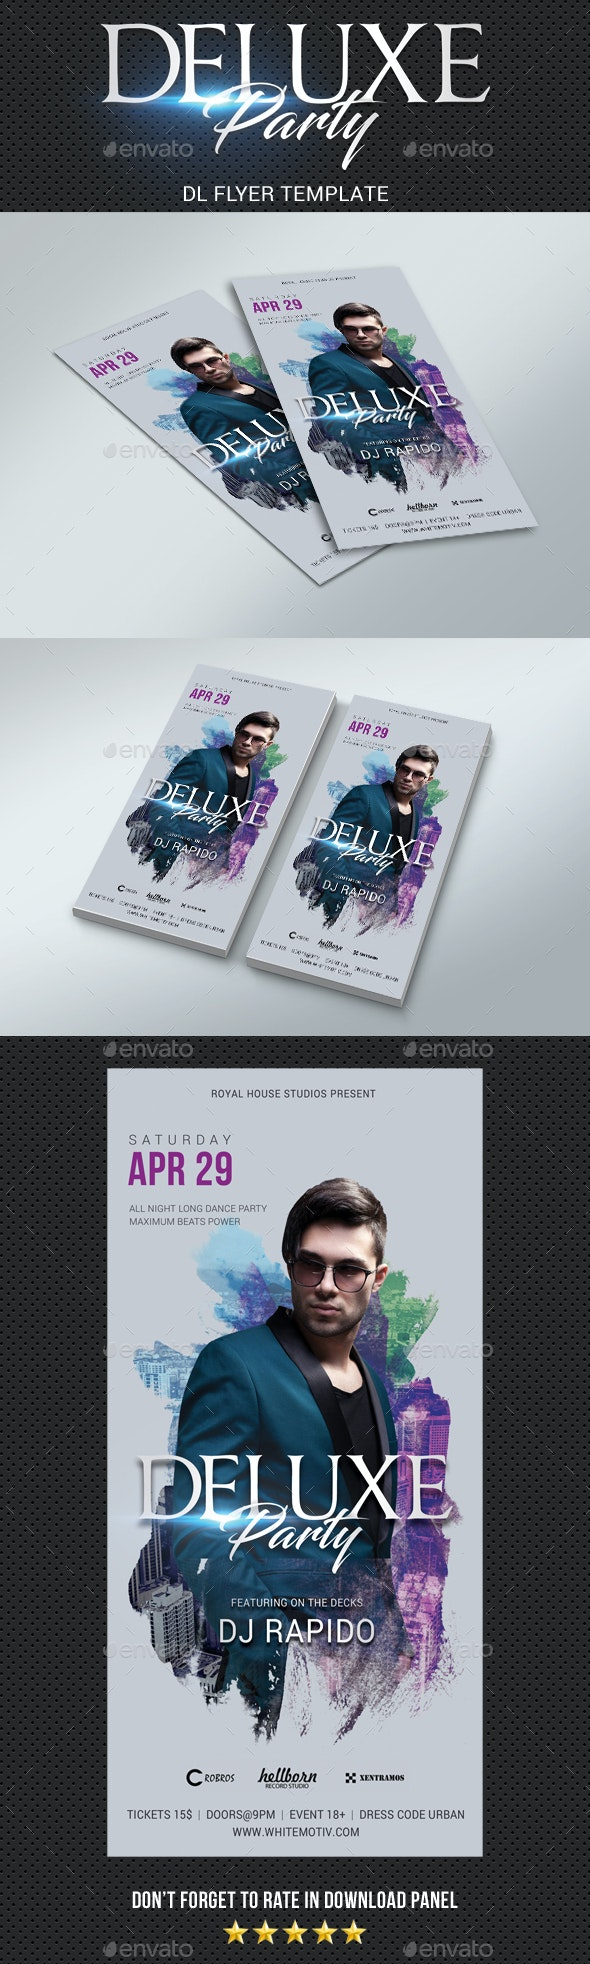 DL Deluxe Dj Party Flyer - Clubs & Parties Events